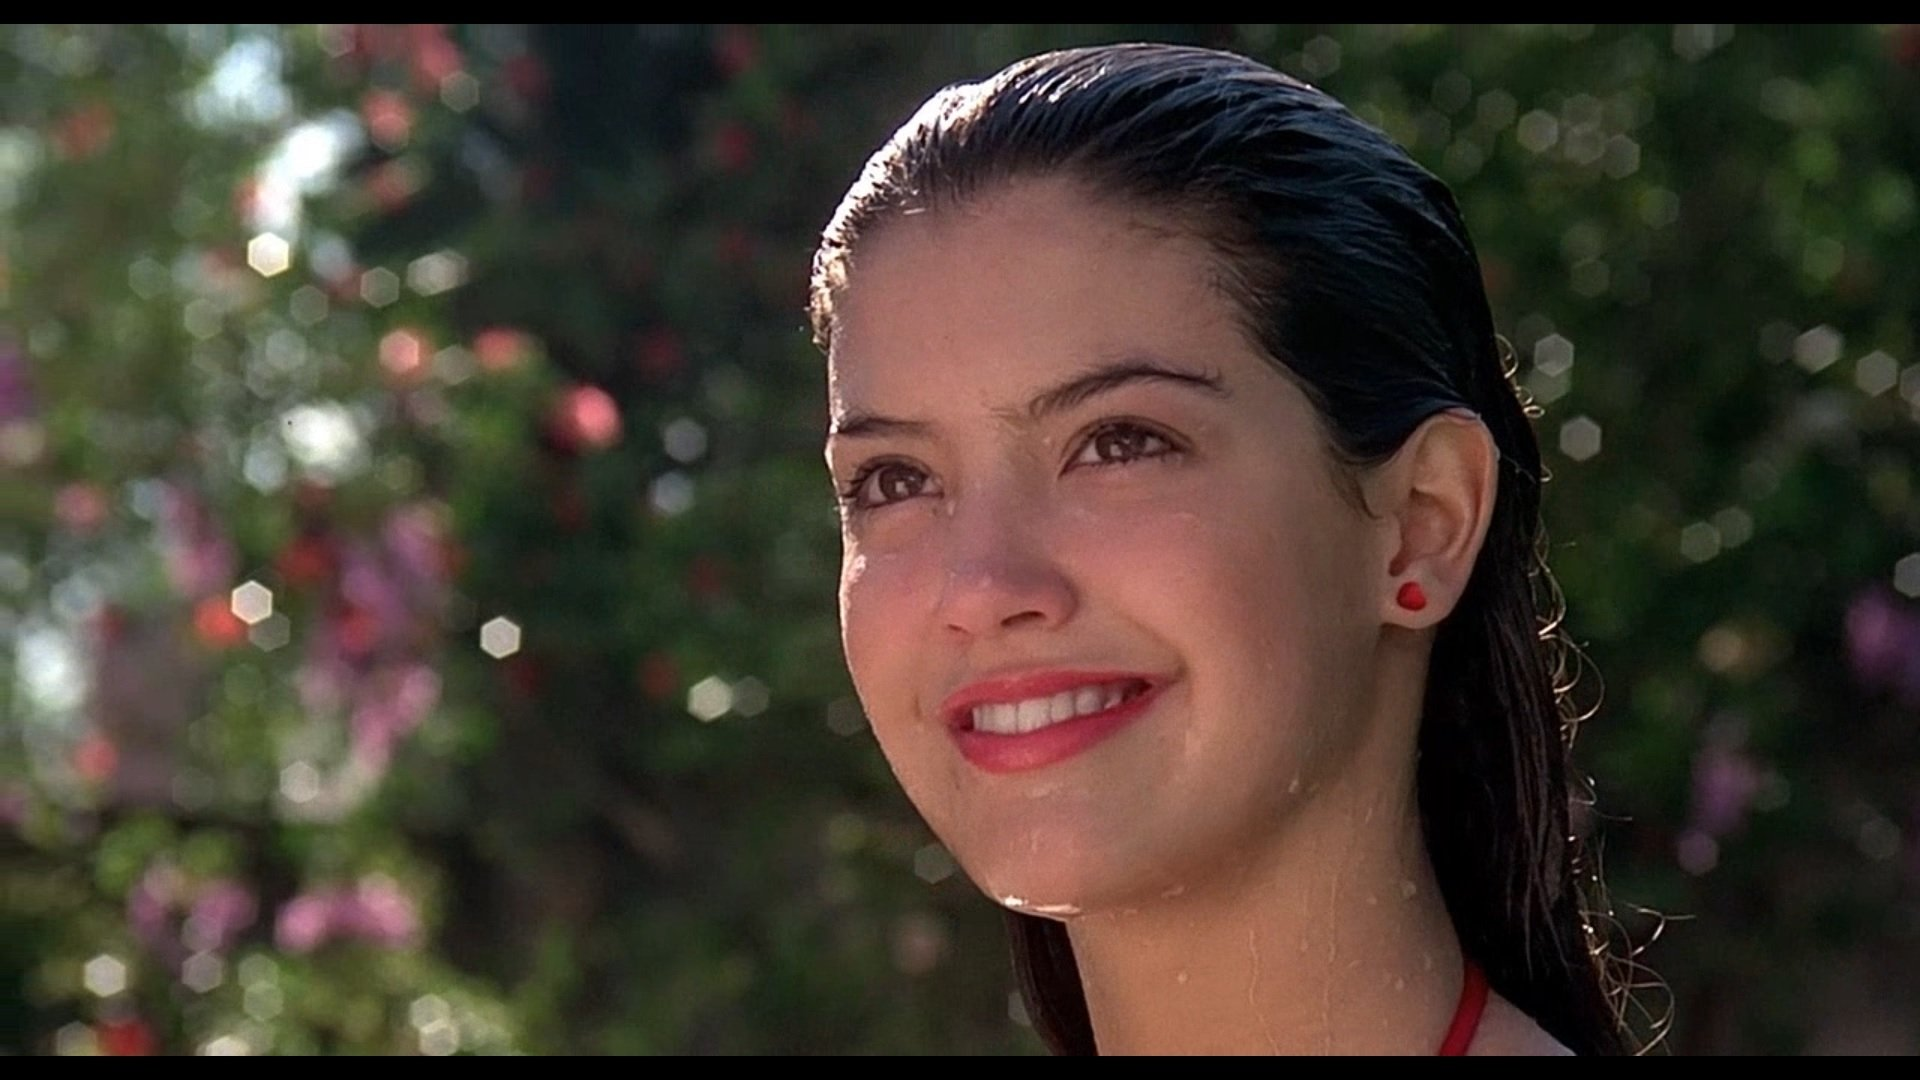 Phoebe Cates Hd Wallpaper  Background Image  1920X1080  Id562184 - Wallpaper Abyss-5085